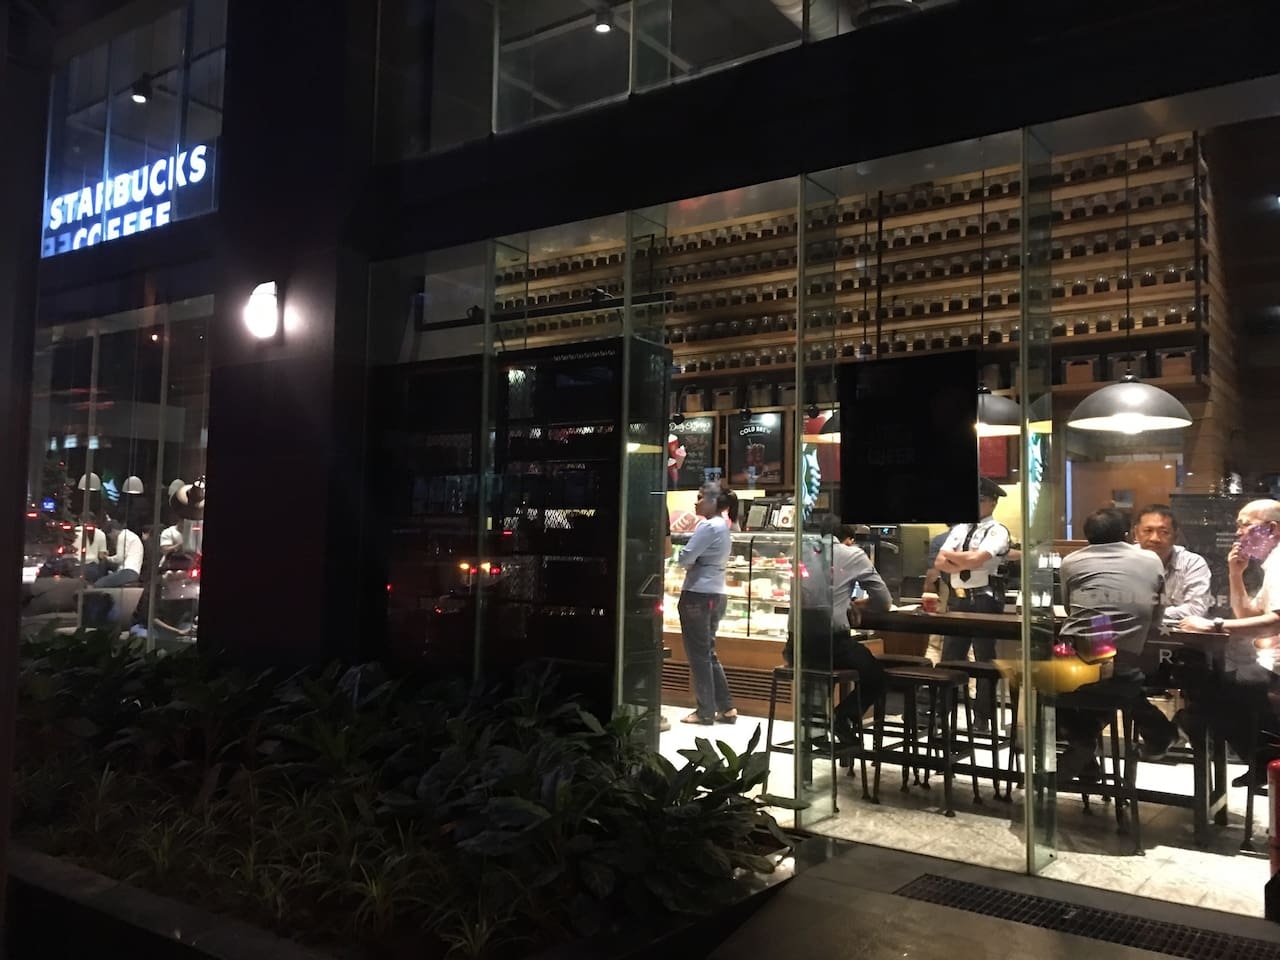 Starbucks Reserve located in the ground floor of the building